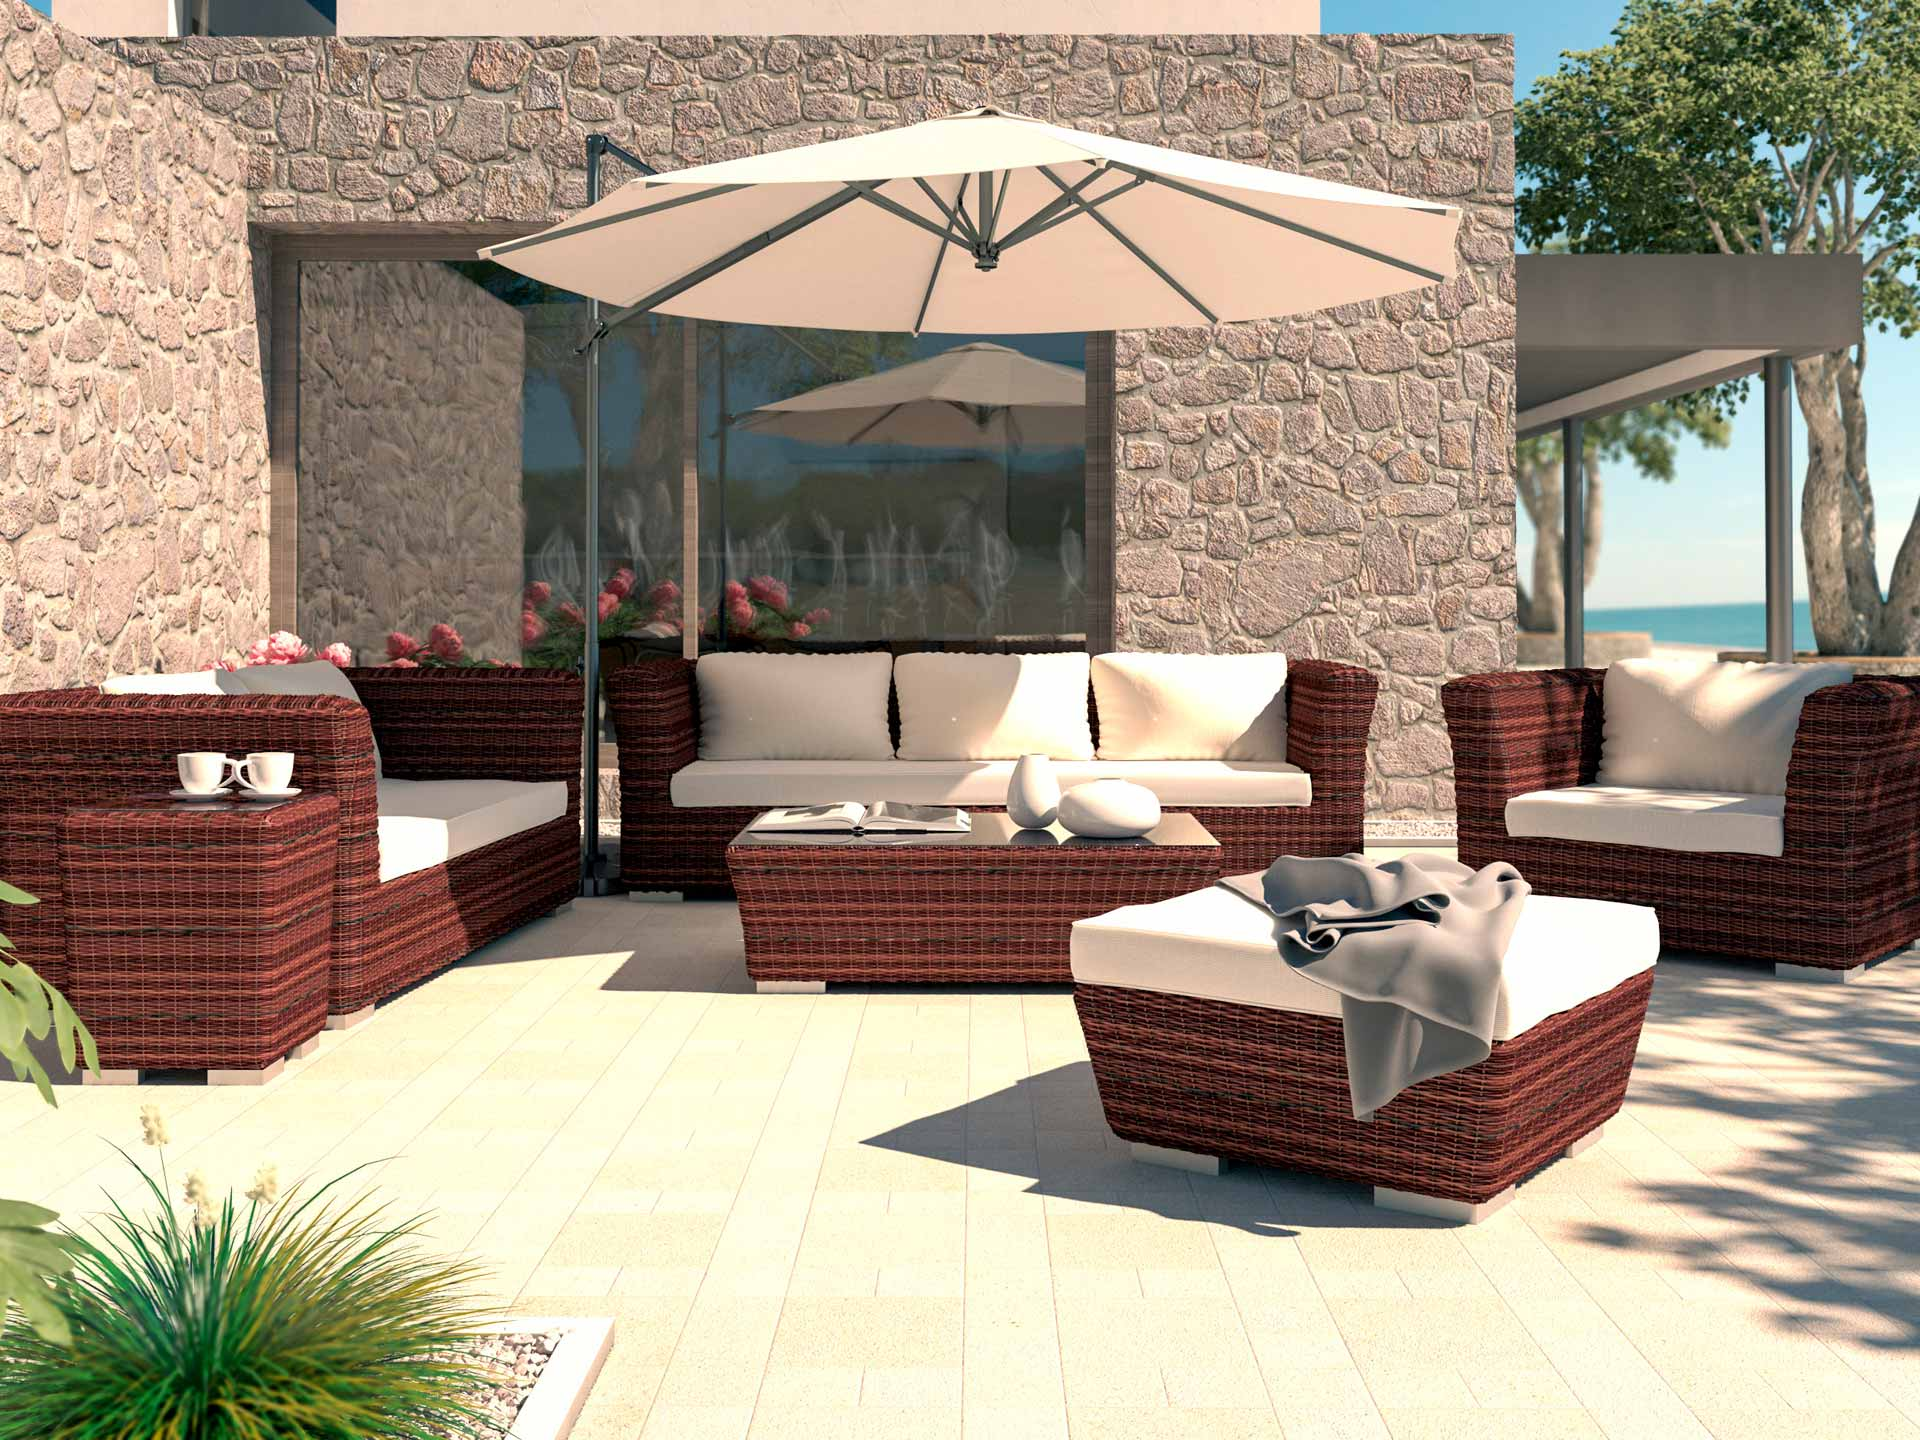 Mueble de resina para exterior amazing muebles de jardn baratos muebles de jardin baratos with - Dazzling sofas baratos beautifying your house ...